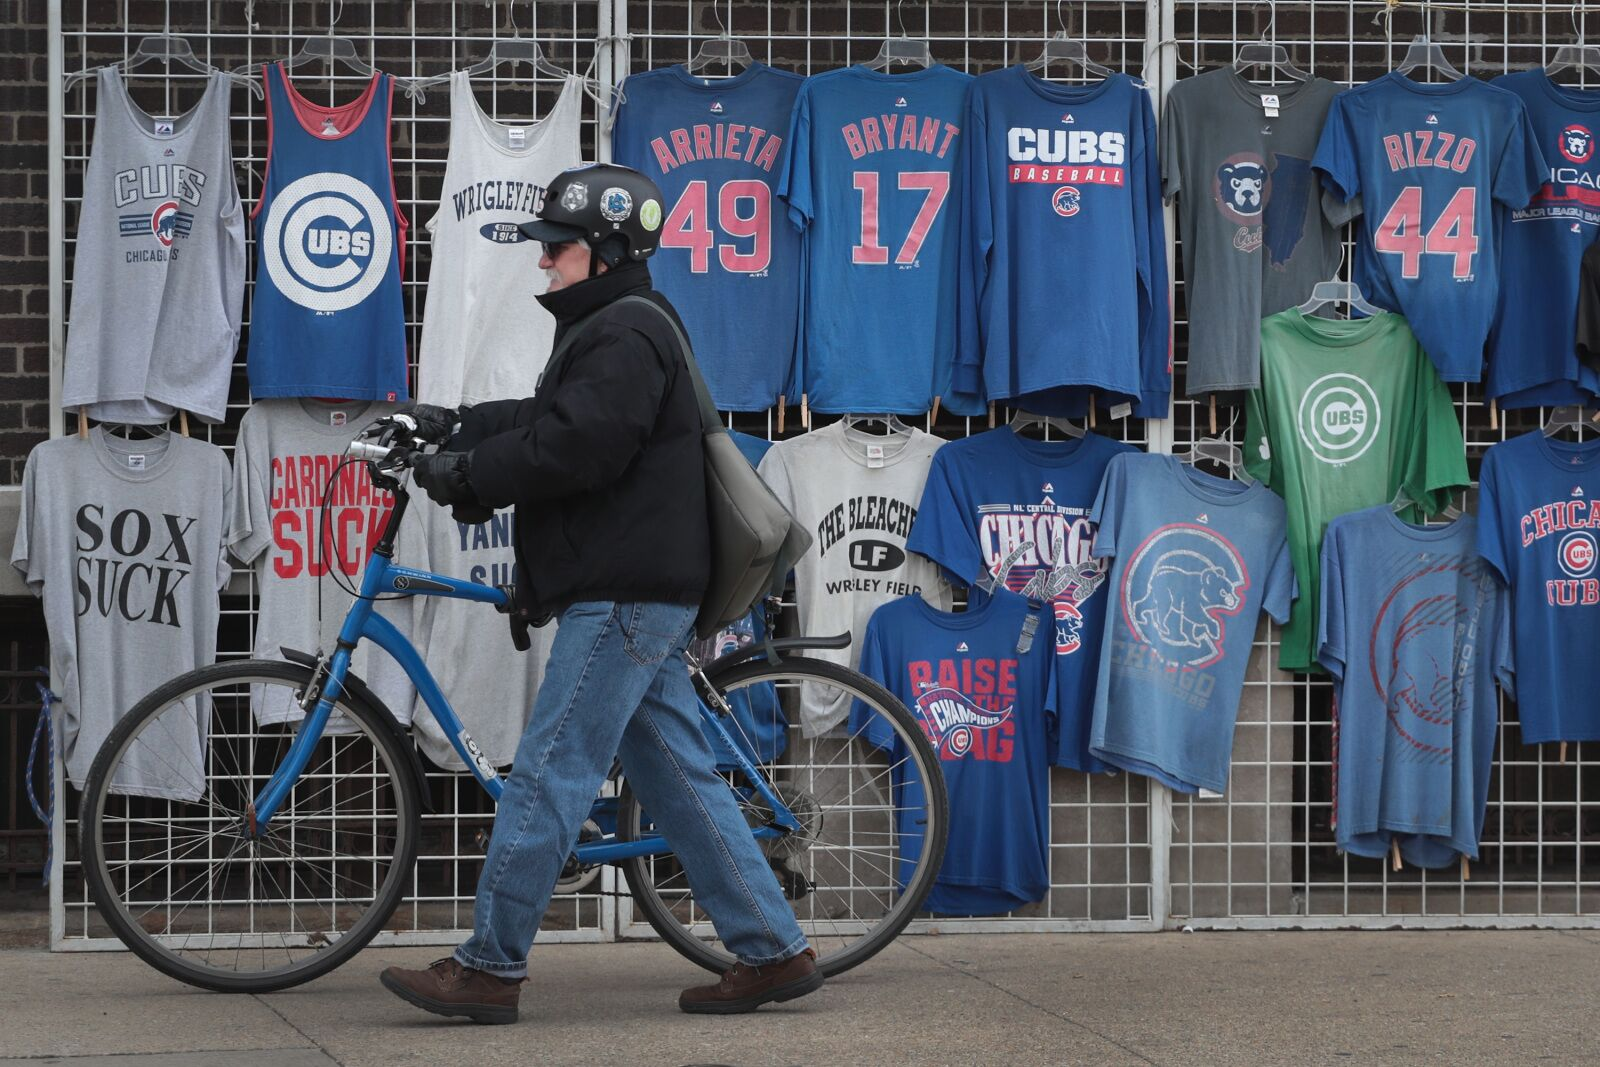 944430096-chicago-cubs-fans-come-out-for-snow-delayed-home-opener.jpg